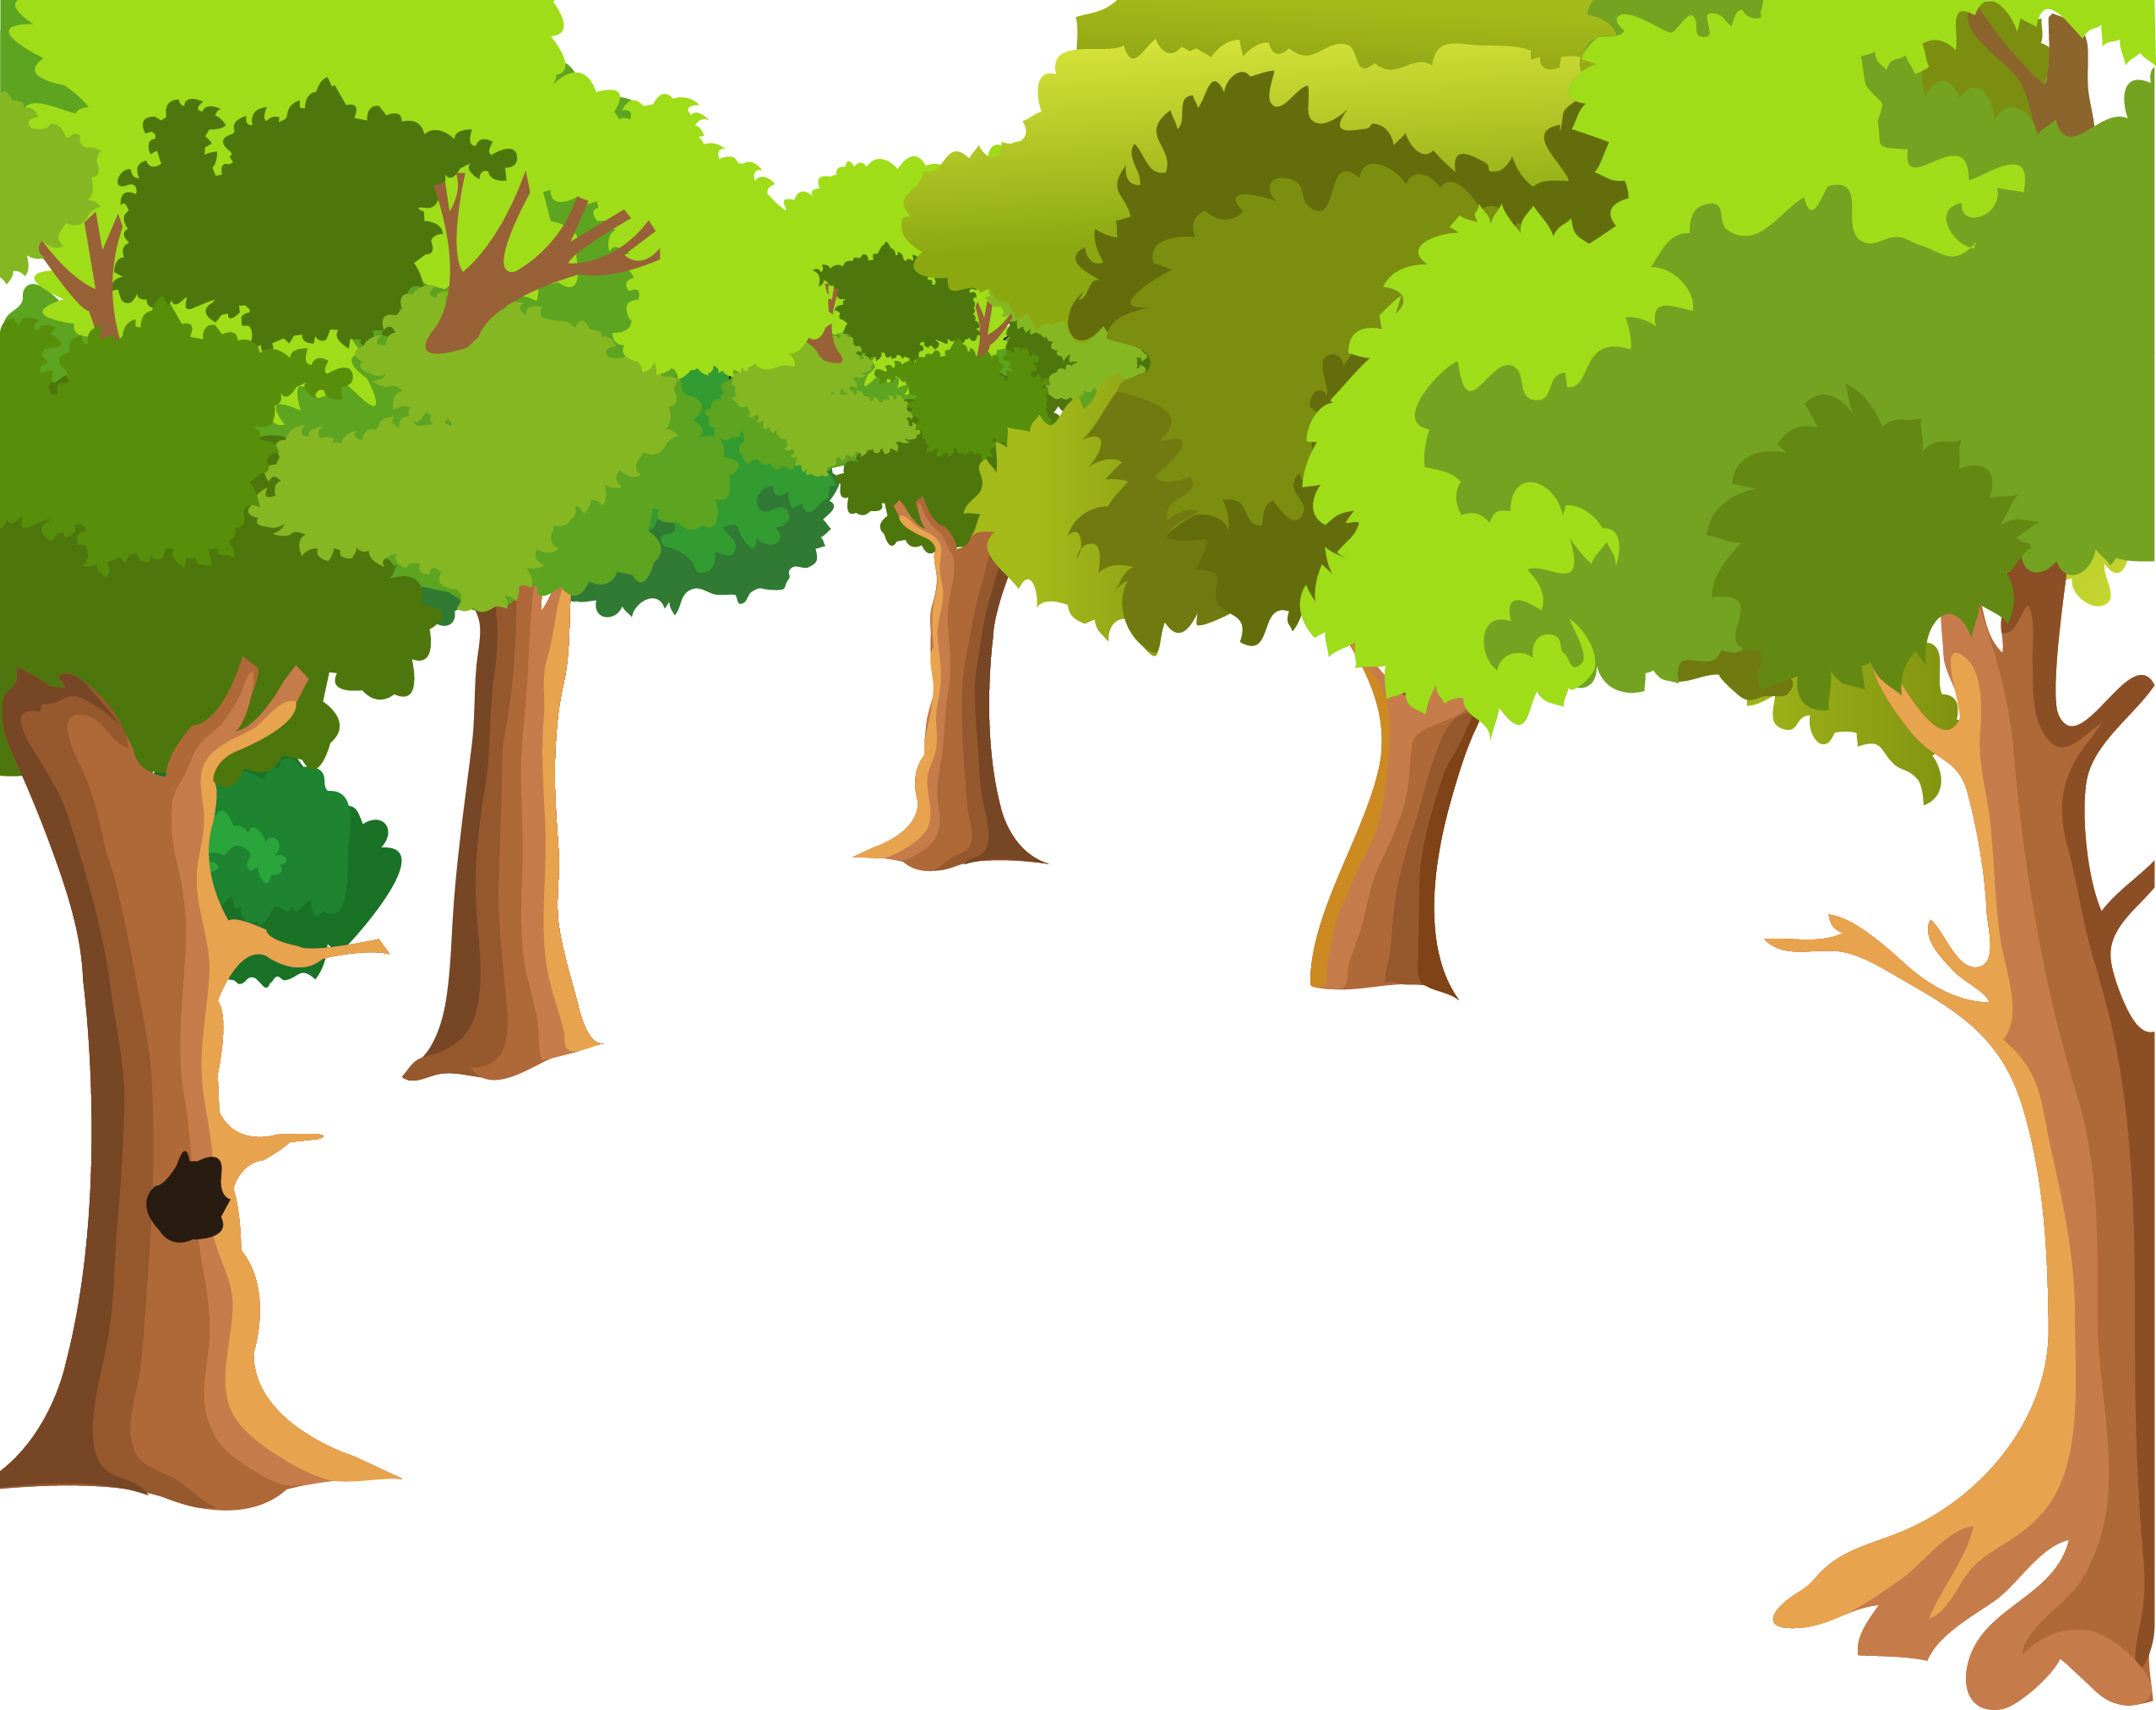 Wood landscaping clipart vector freeuse stock Landscape painting Cartoon Drawing - Cartoon forest tree ... vector freeuse stock